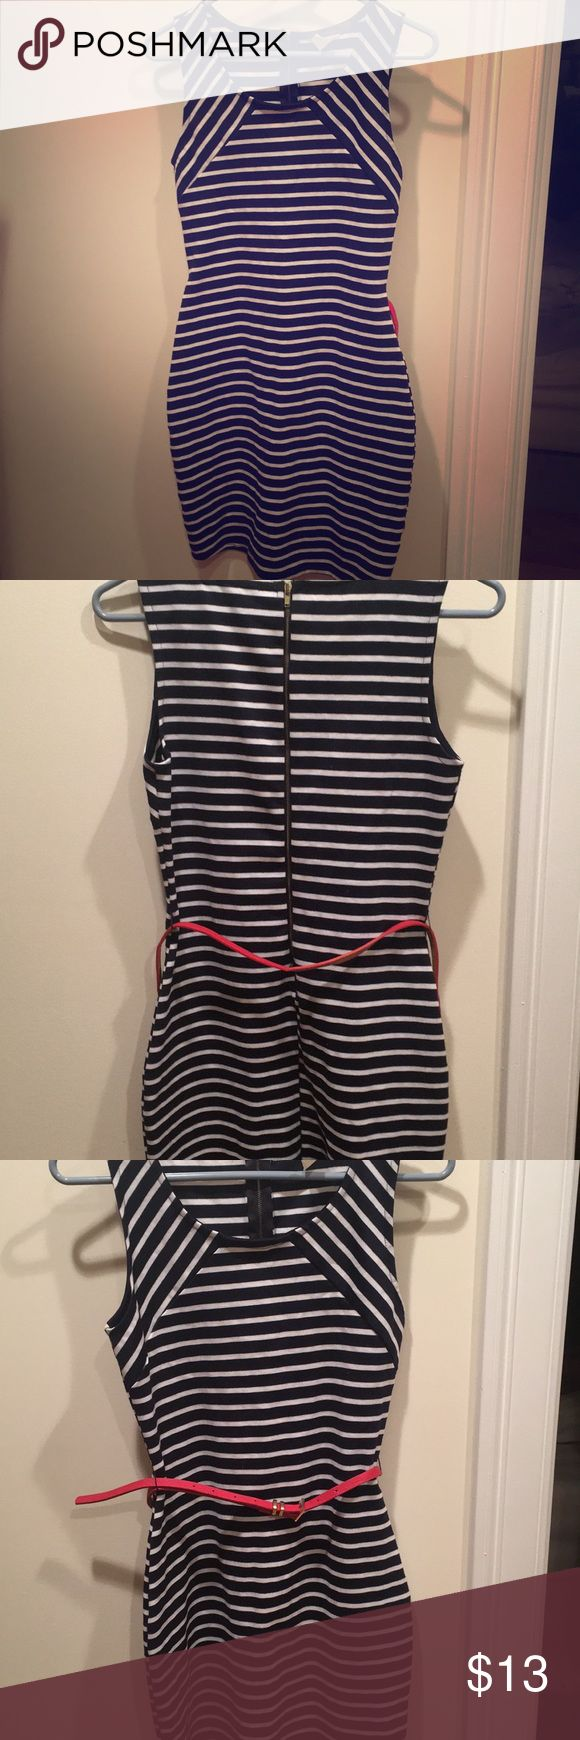 Navy and white striped dress size M Navy and white striped short dress with a thin red belt. I LOVED this dress while it fit, now it's time to let someone else rock it. I wore it a handful of time, but it's in good condition! enRoute Dresses Mini